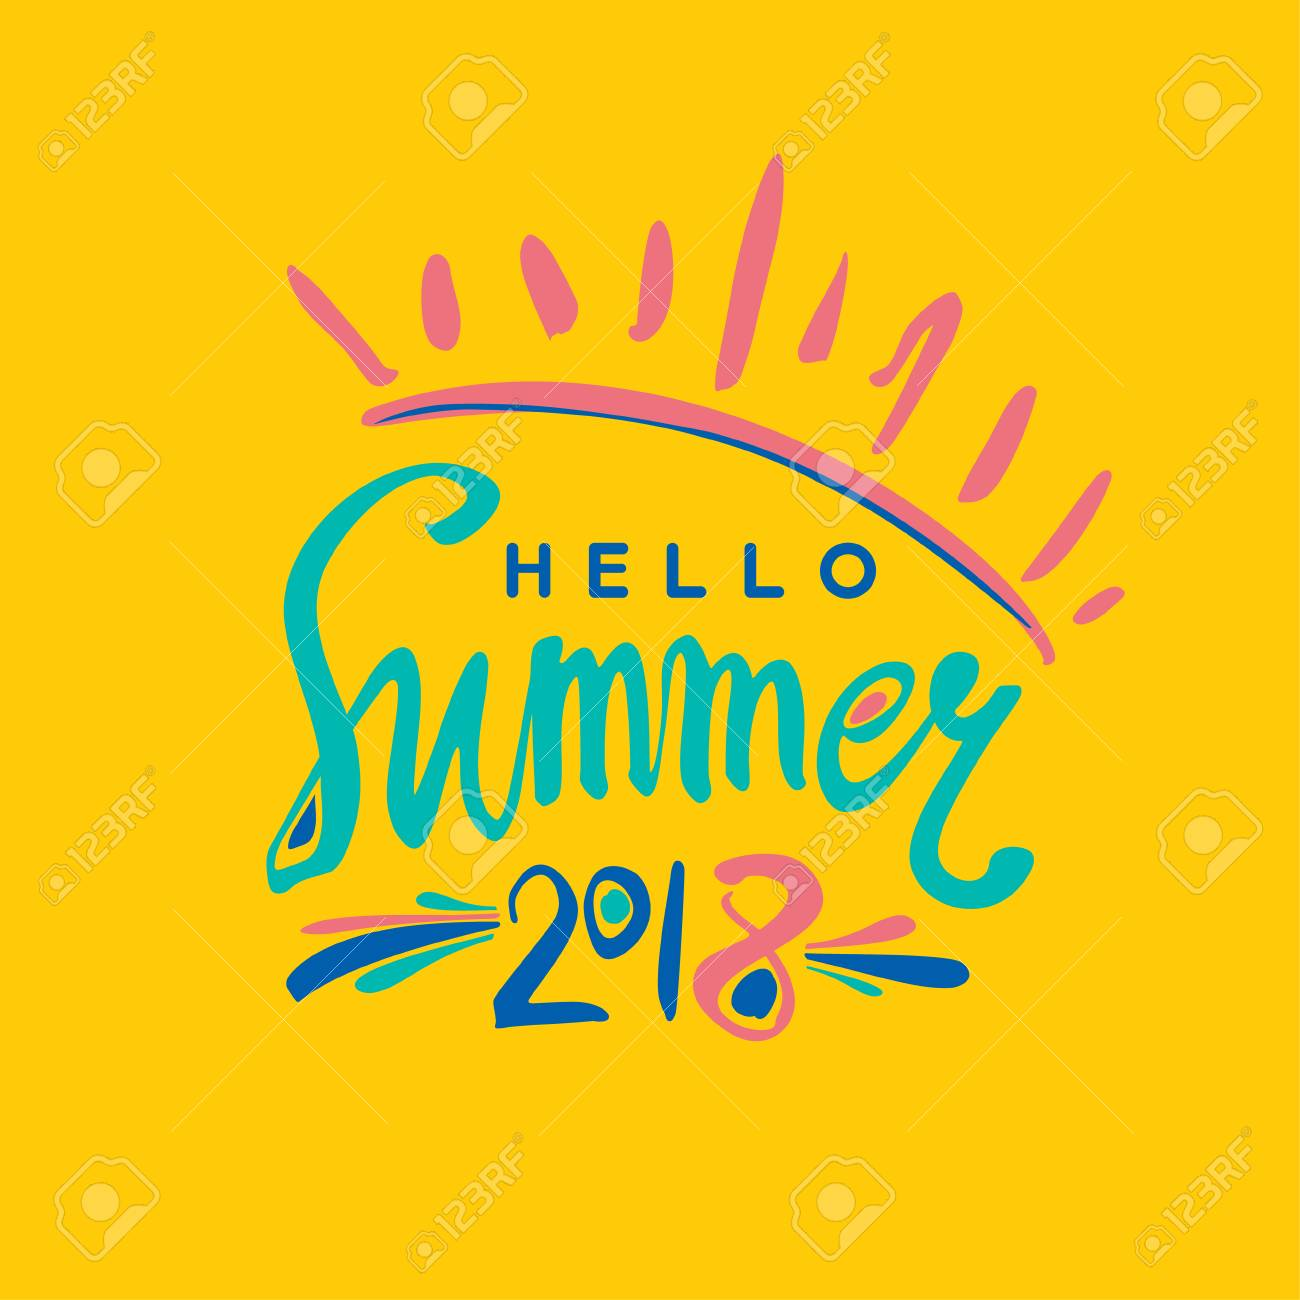 Good Bright Card Hello Summer 2018 Calligraphy On Yellow Background. Stock  Vector   93750626